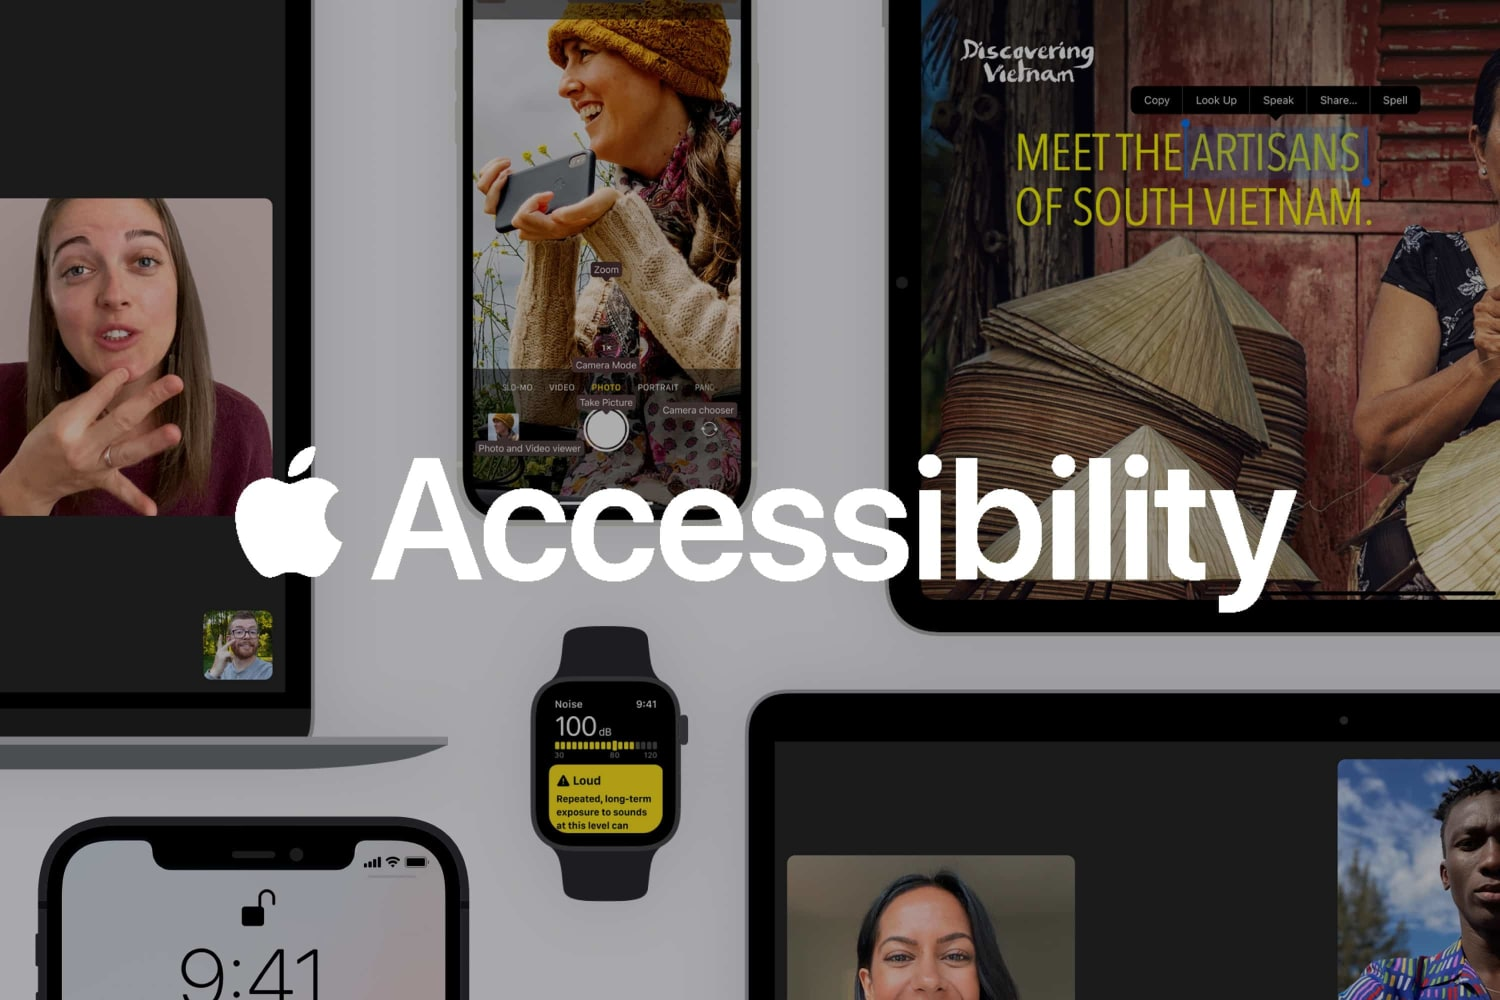 executives-at-apple-say-they-prioritize-accessibility-20201204-12